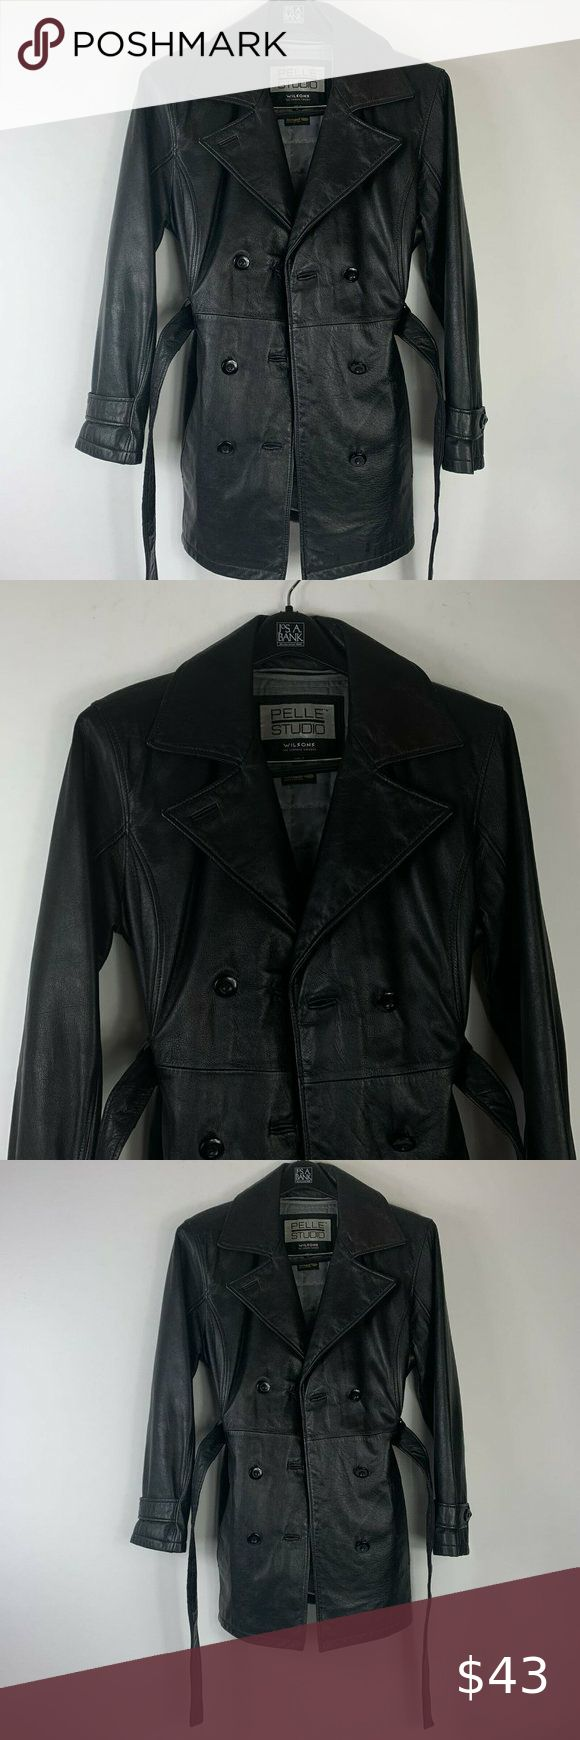 Pelle Studio Wilsons Leather Black Coat Wm Sz M in 2020